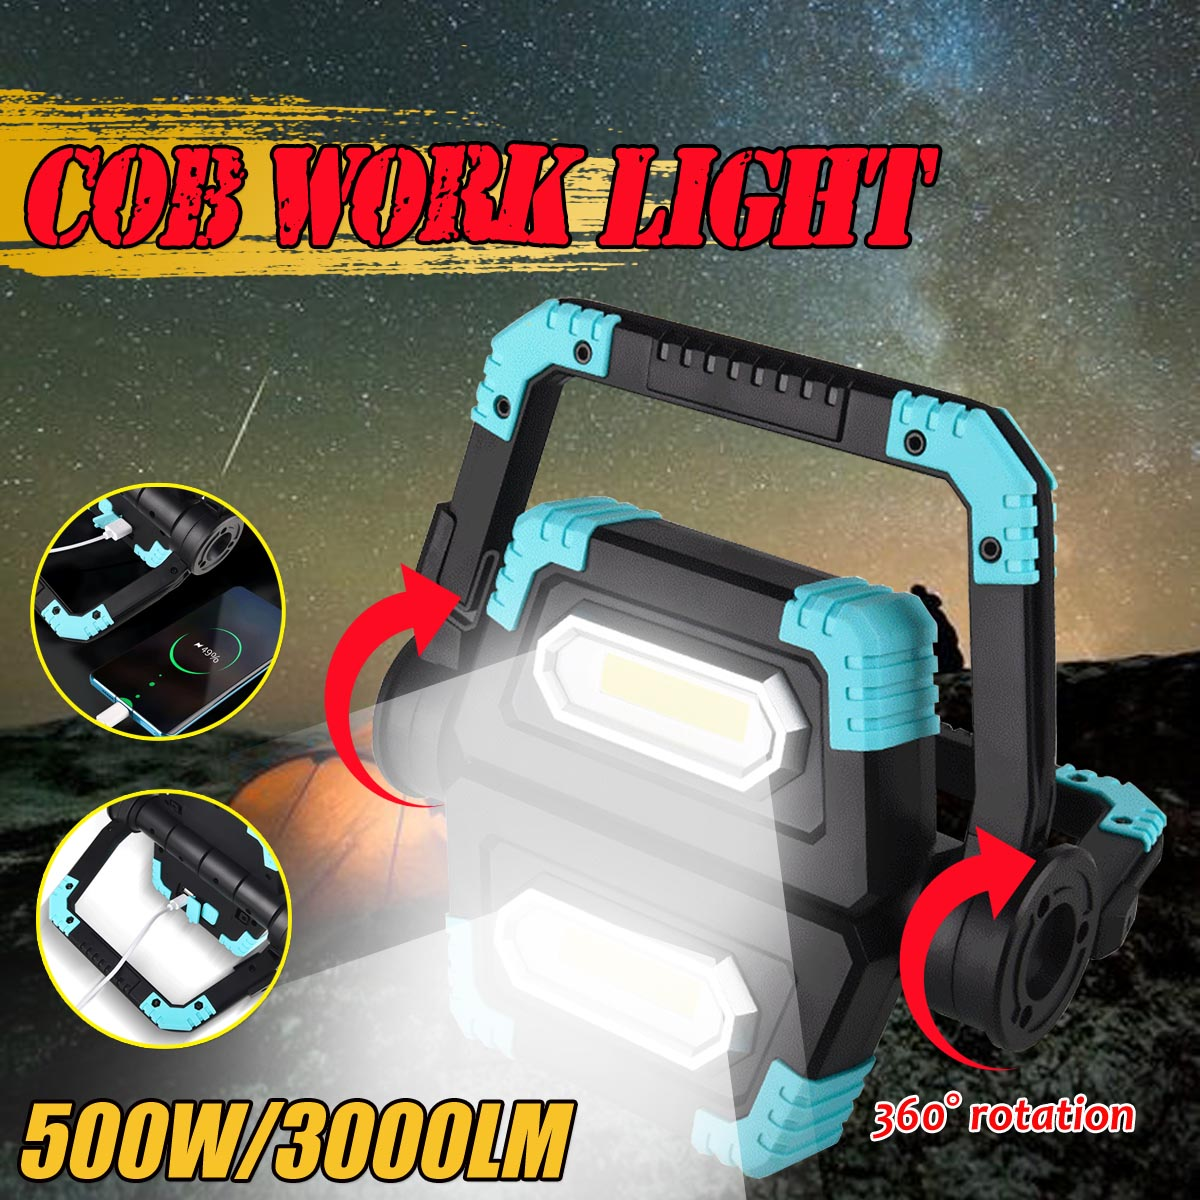 Cob Work Light 500W Led Portable Spotlight 3000LM Super-Bright USB lantern Camping Outdoor Lighting rechargeable Led Flashlight